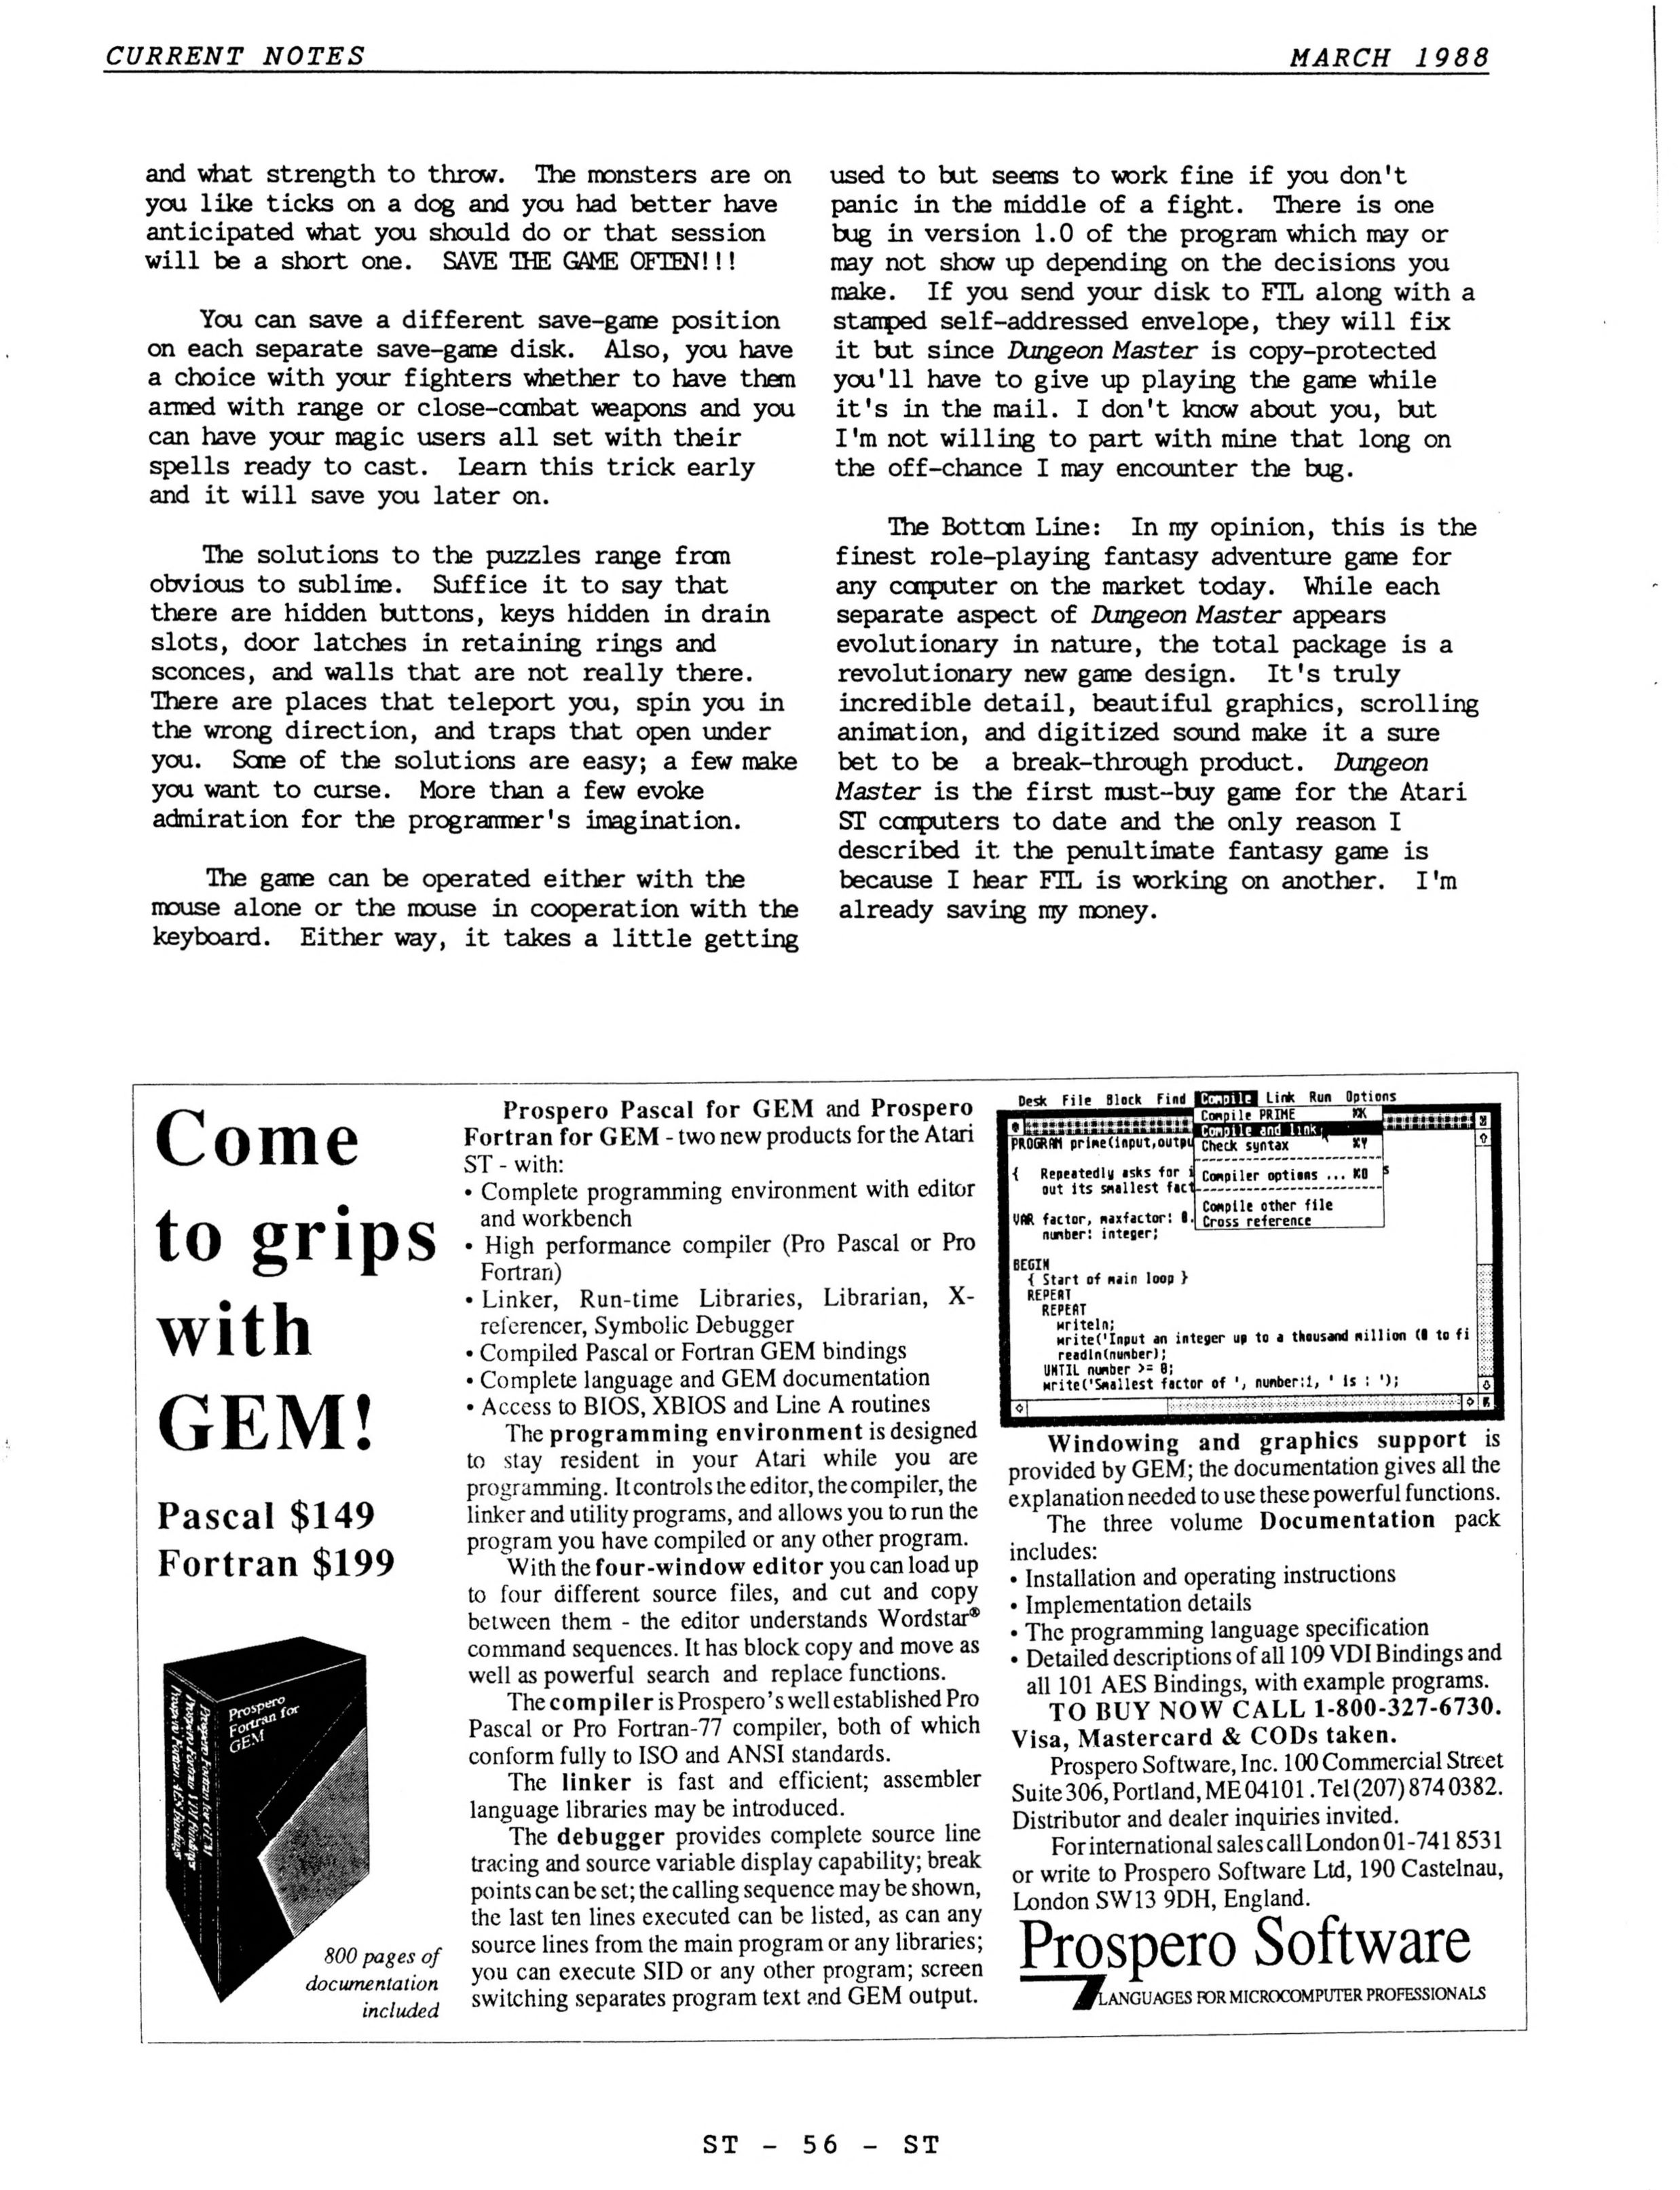 Dungeon Master for Atari ST Review published in American magazine 'Current Notes', March 1988, Page 56